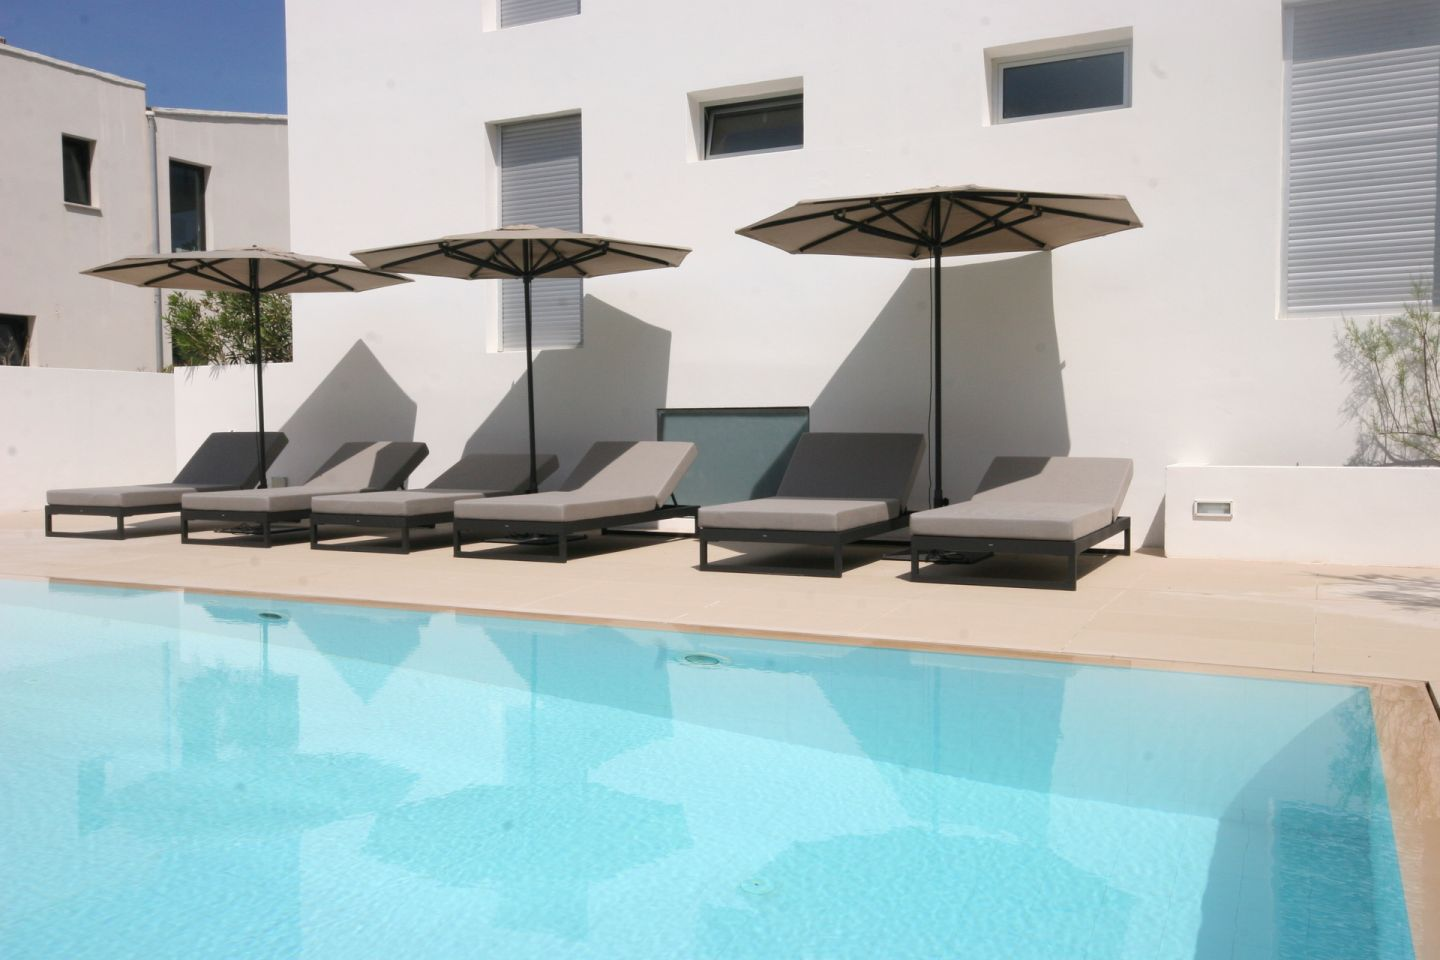 2 Bed Building for sale in Cala San Vicente 4